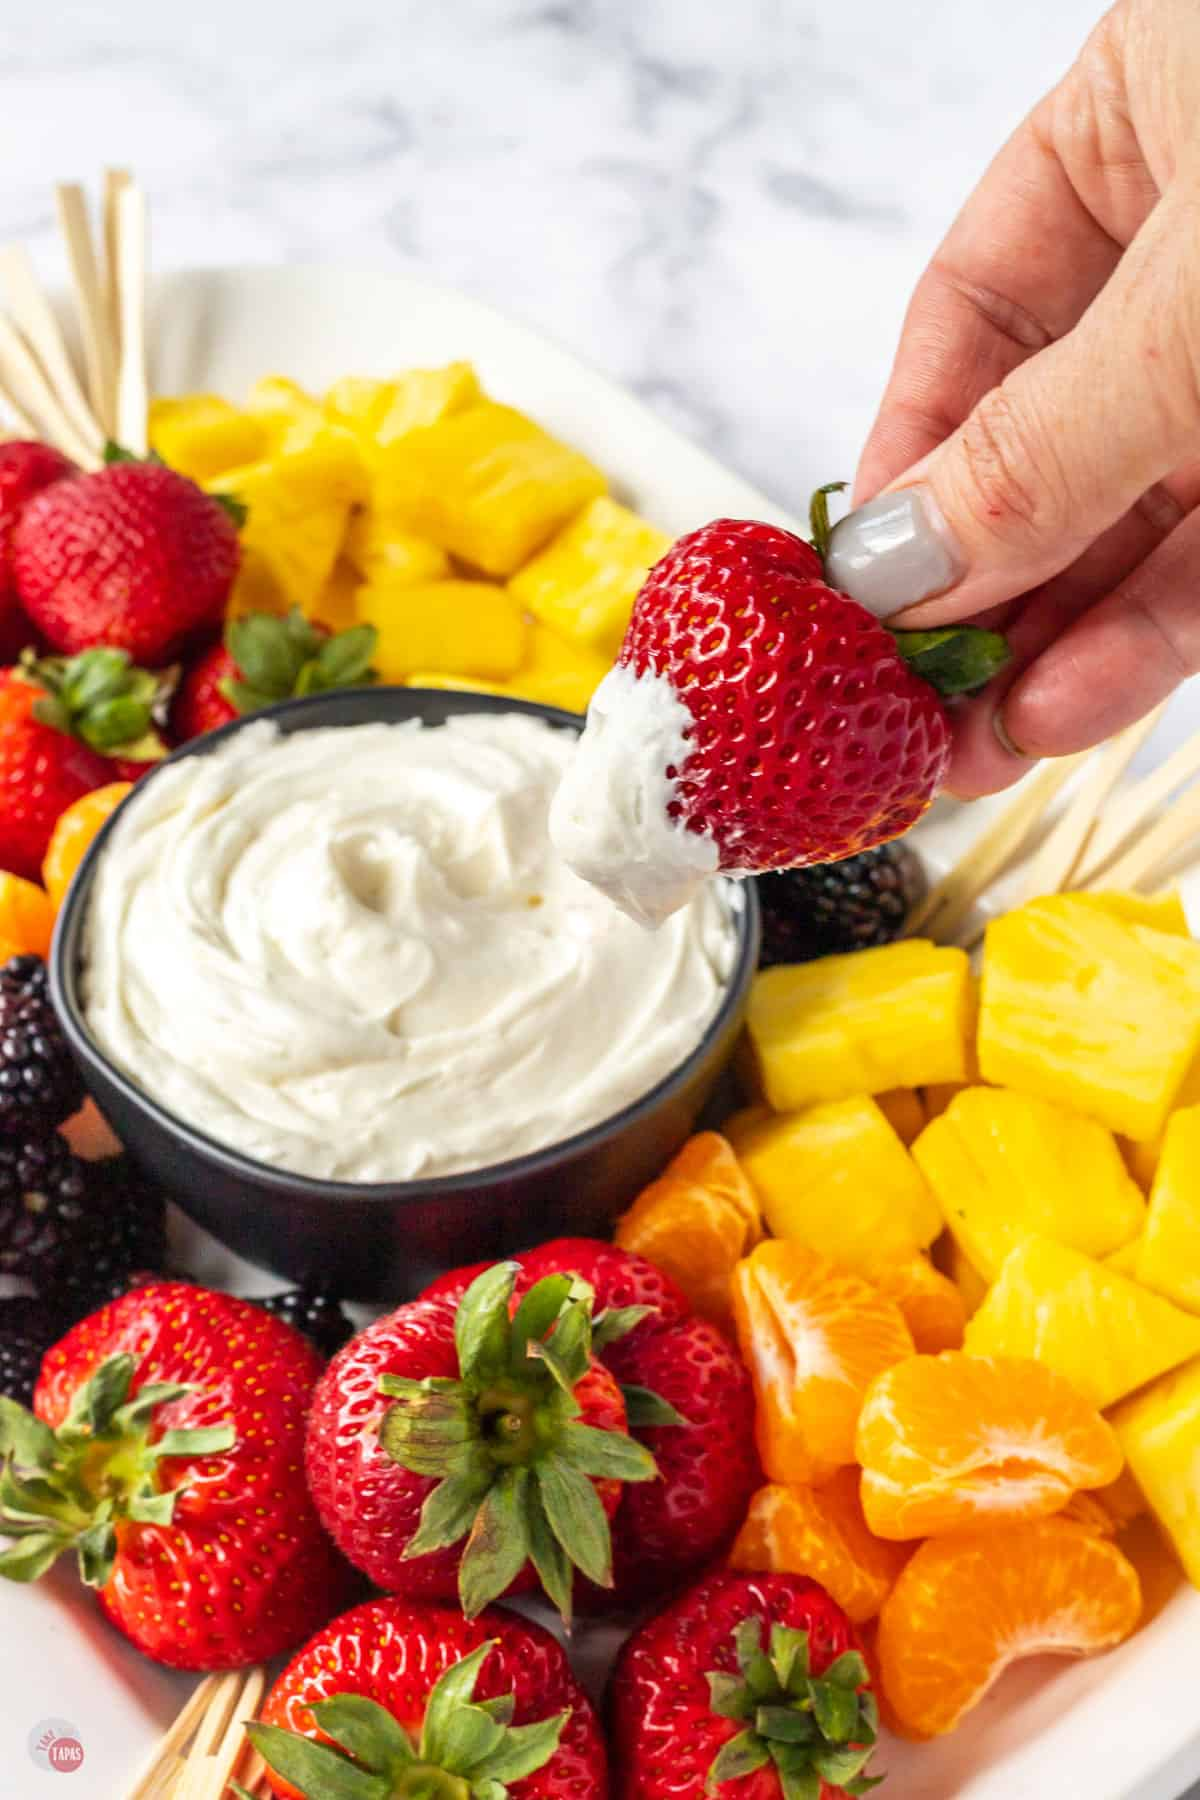 strawberry dipped in white dip